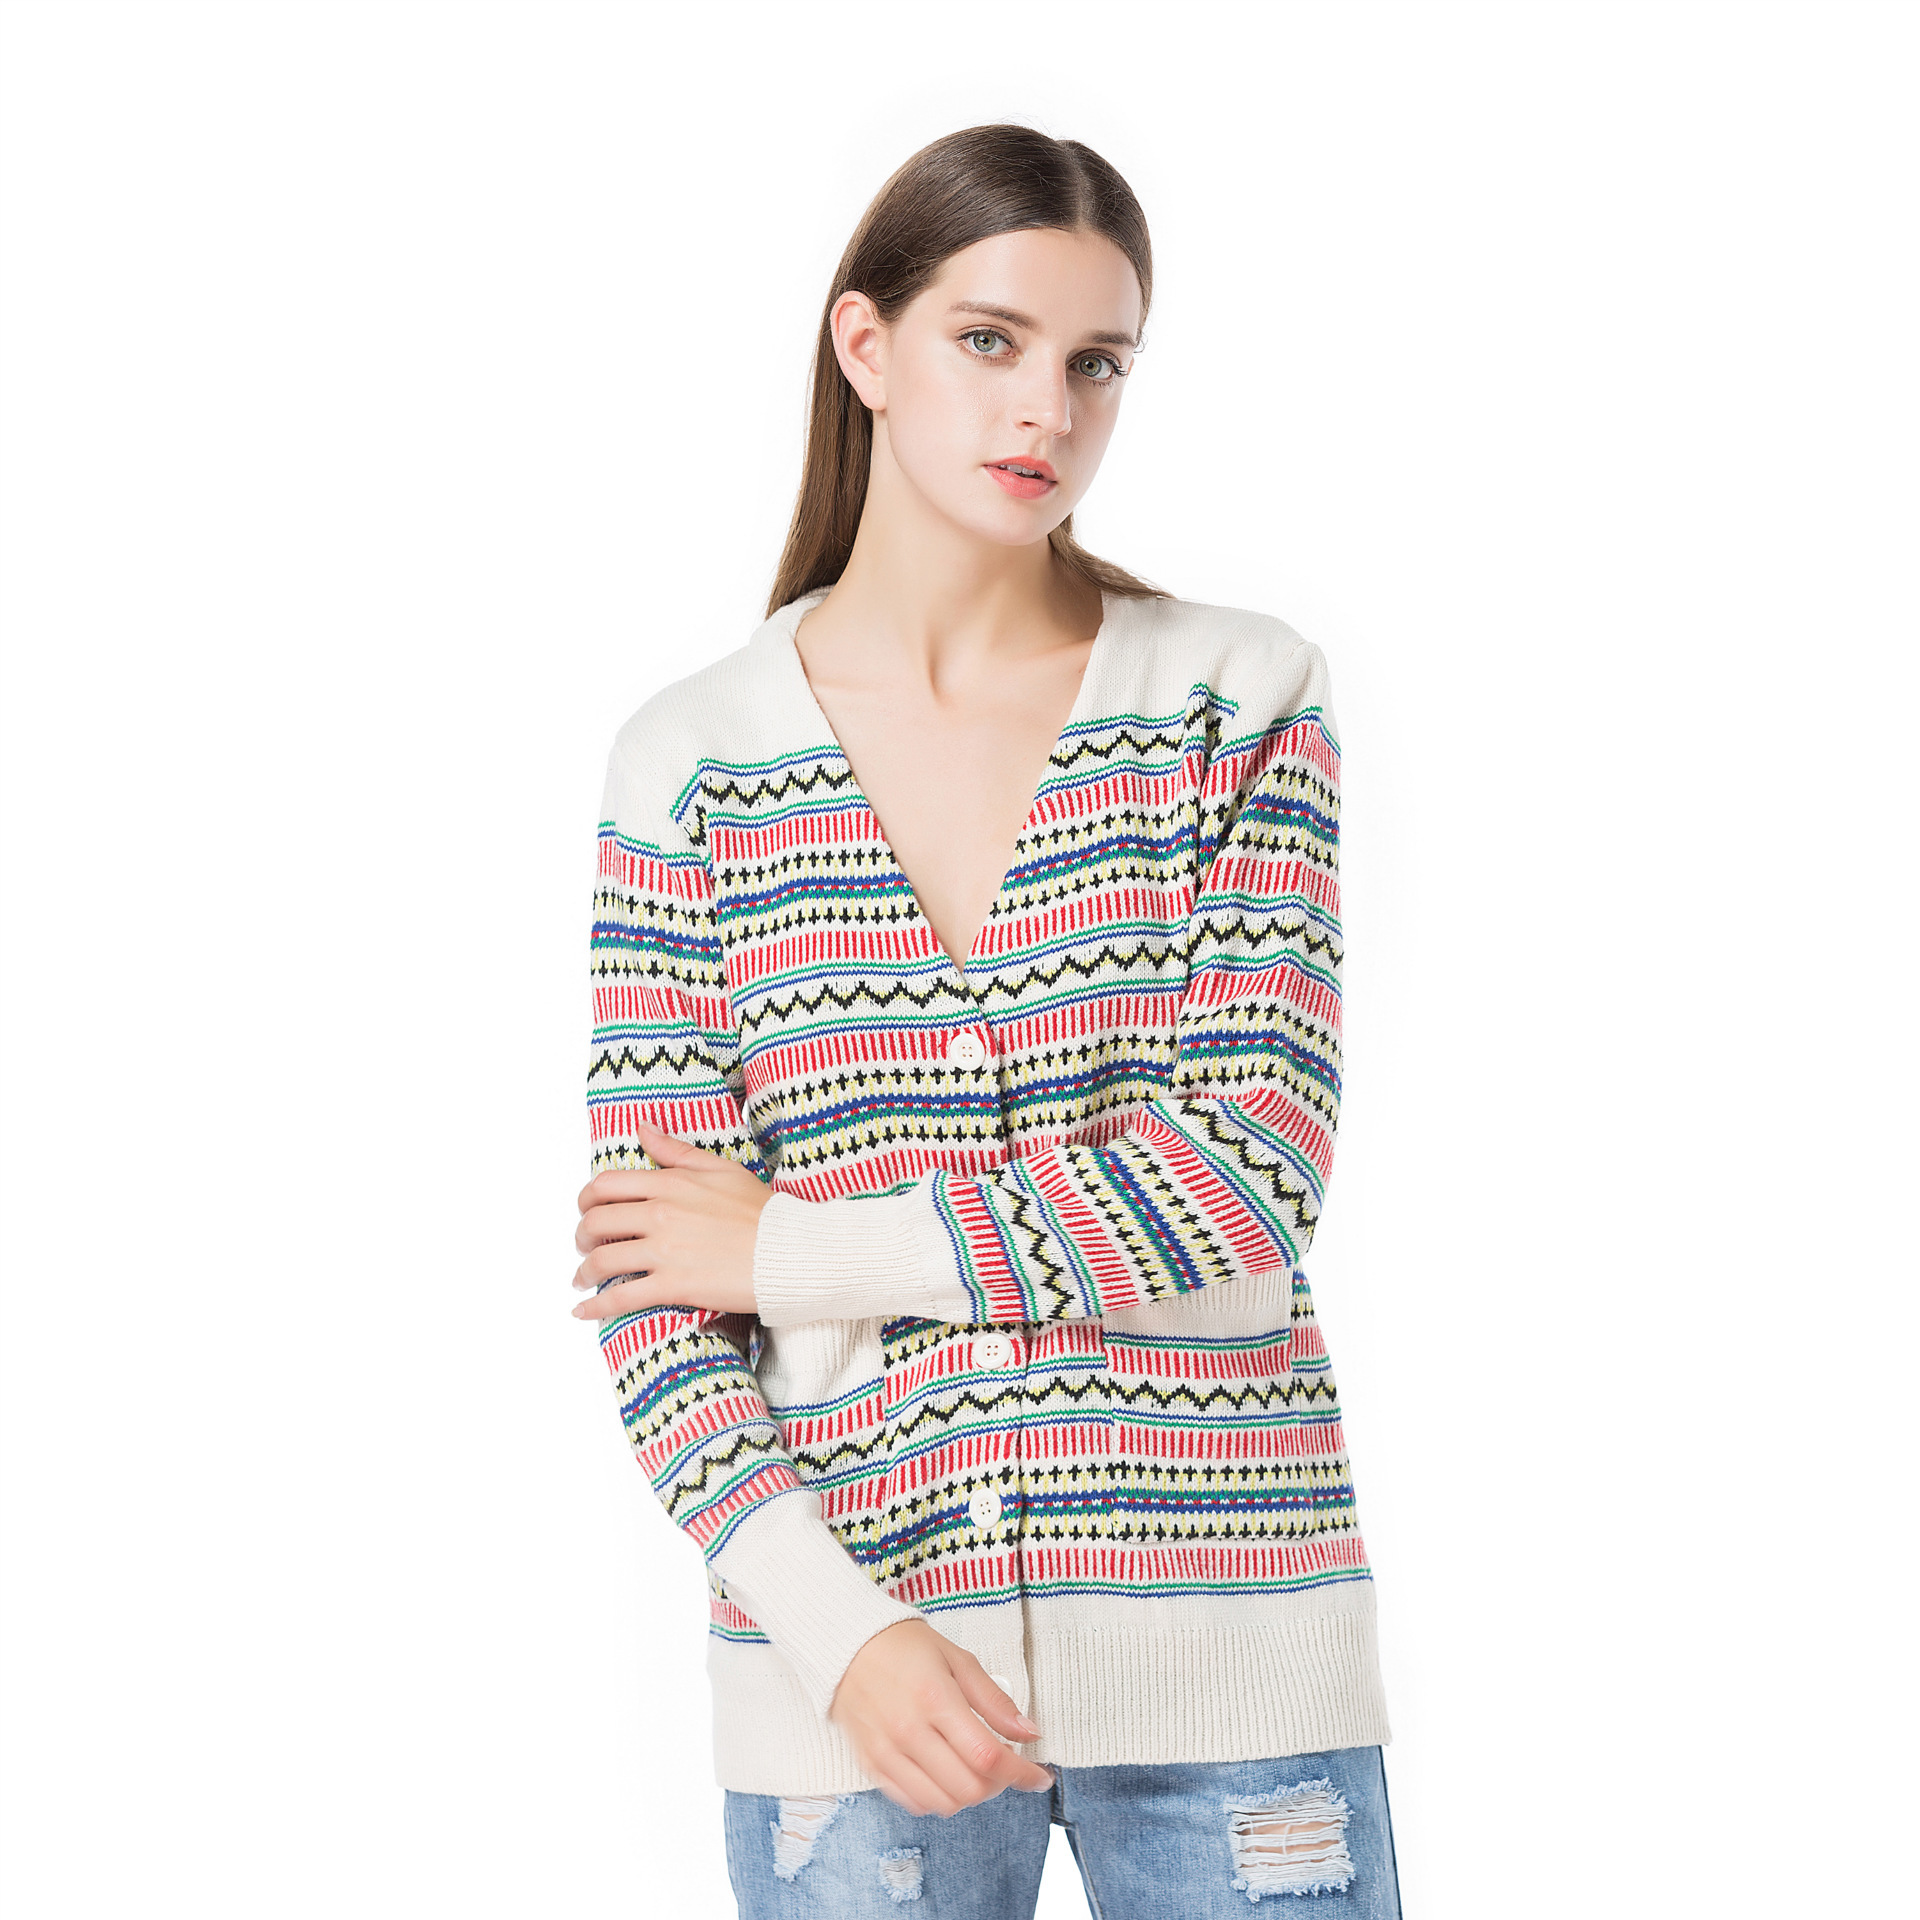 Oversized Vintage V Neck Winter Autumn Women Sweater Christmas Holiday Pocket Single Breasted Female Button Outwear Top Cardigan